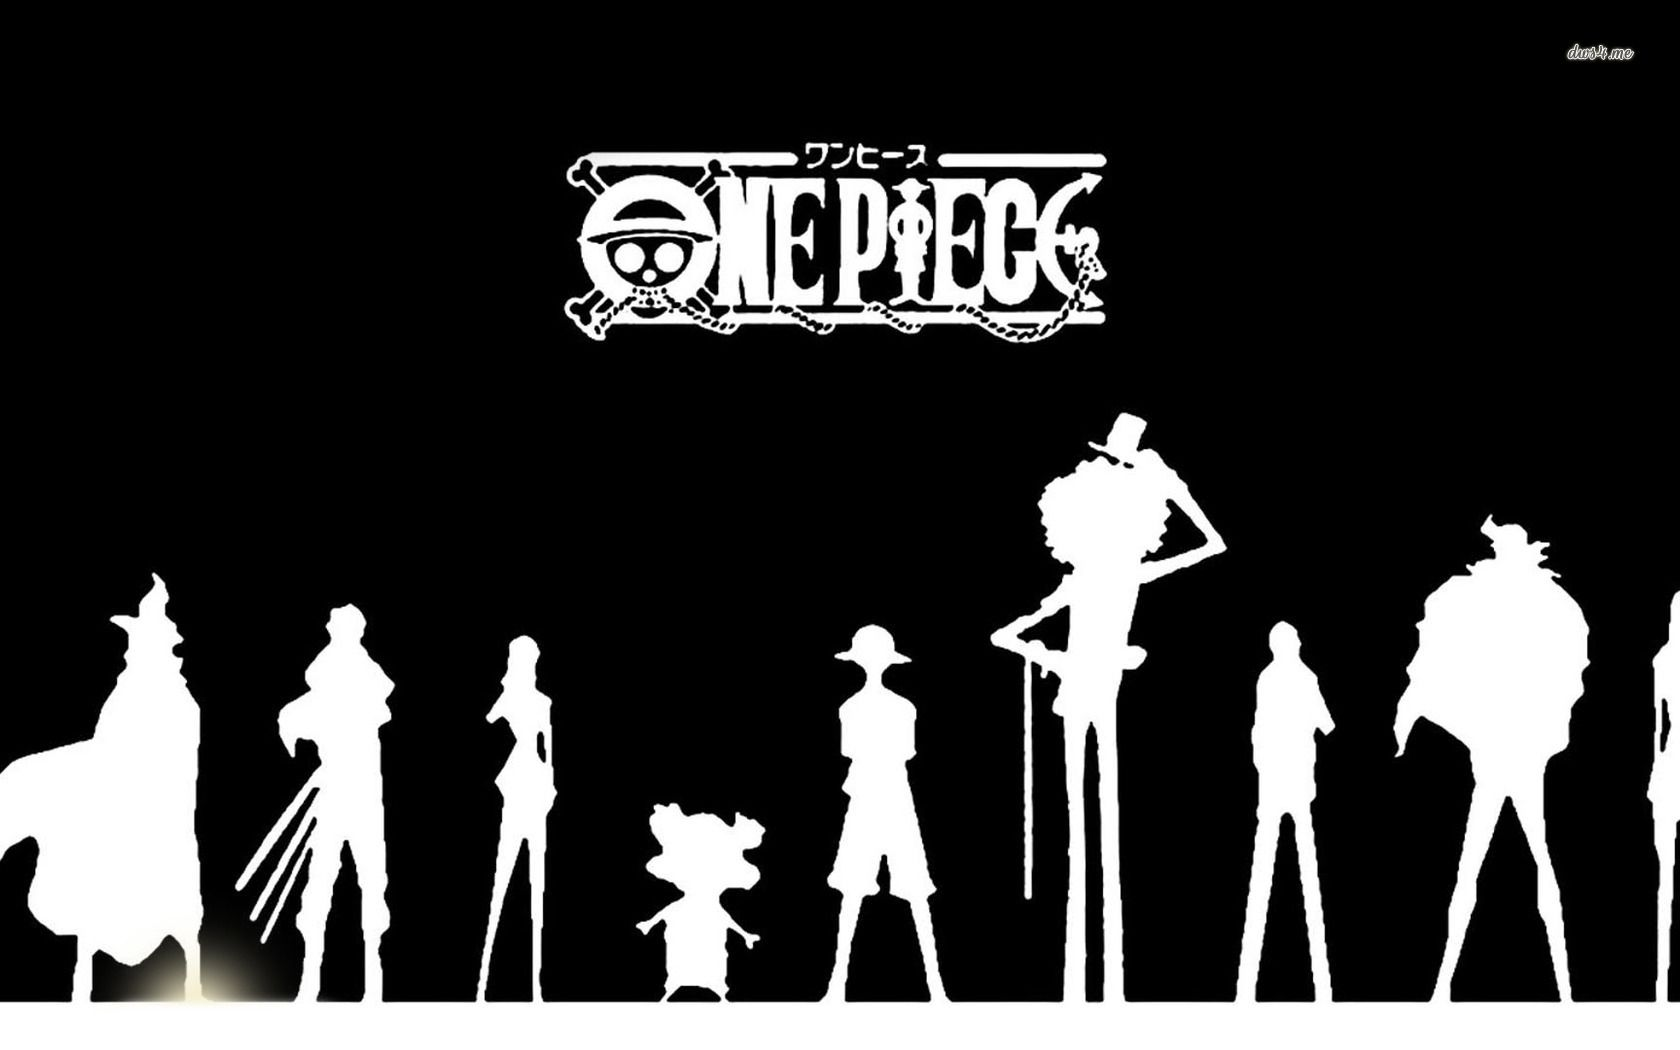 Black One Piece Wallpapers Top Free Black One Piece Backgrounds Wallpaperaccess